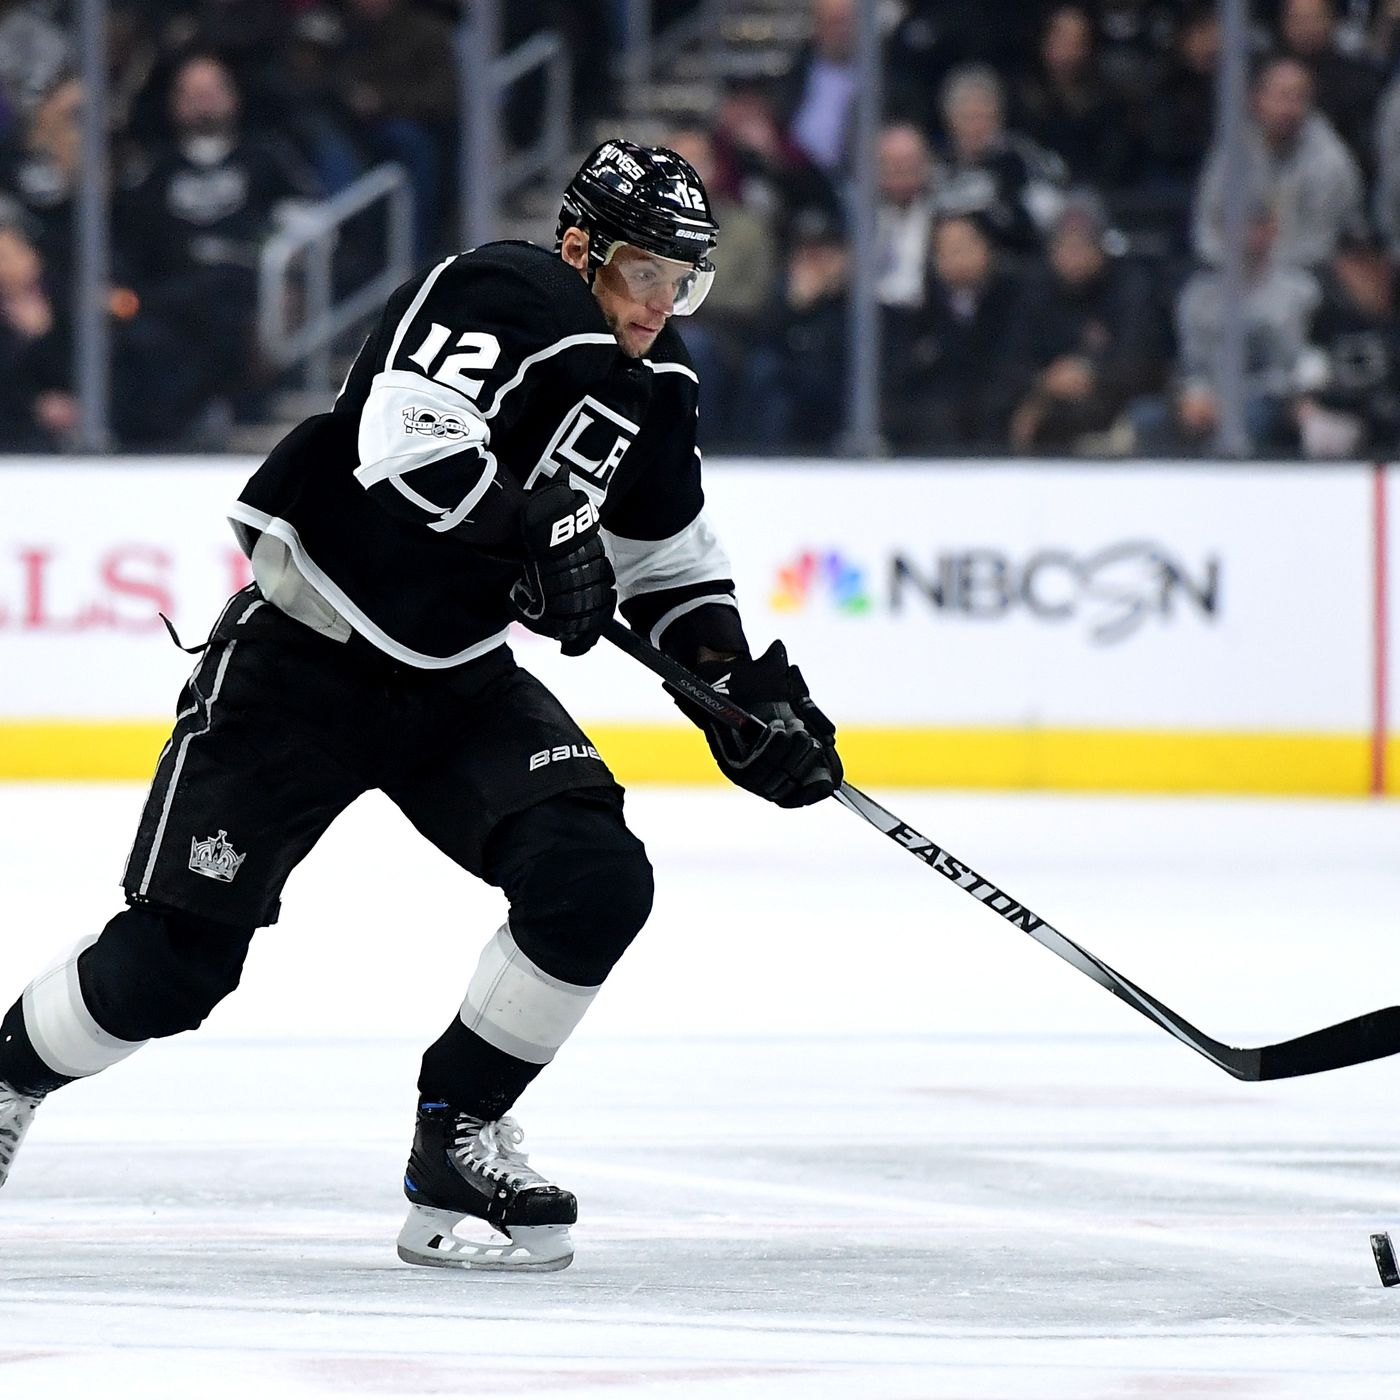 f3463e3fb Marian Gaborik and the Kings overpower the Wild in the third period to earn  5-2 win - Hockey Wilderness